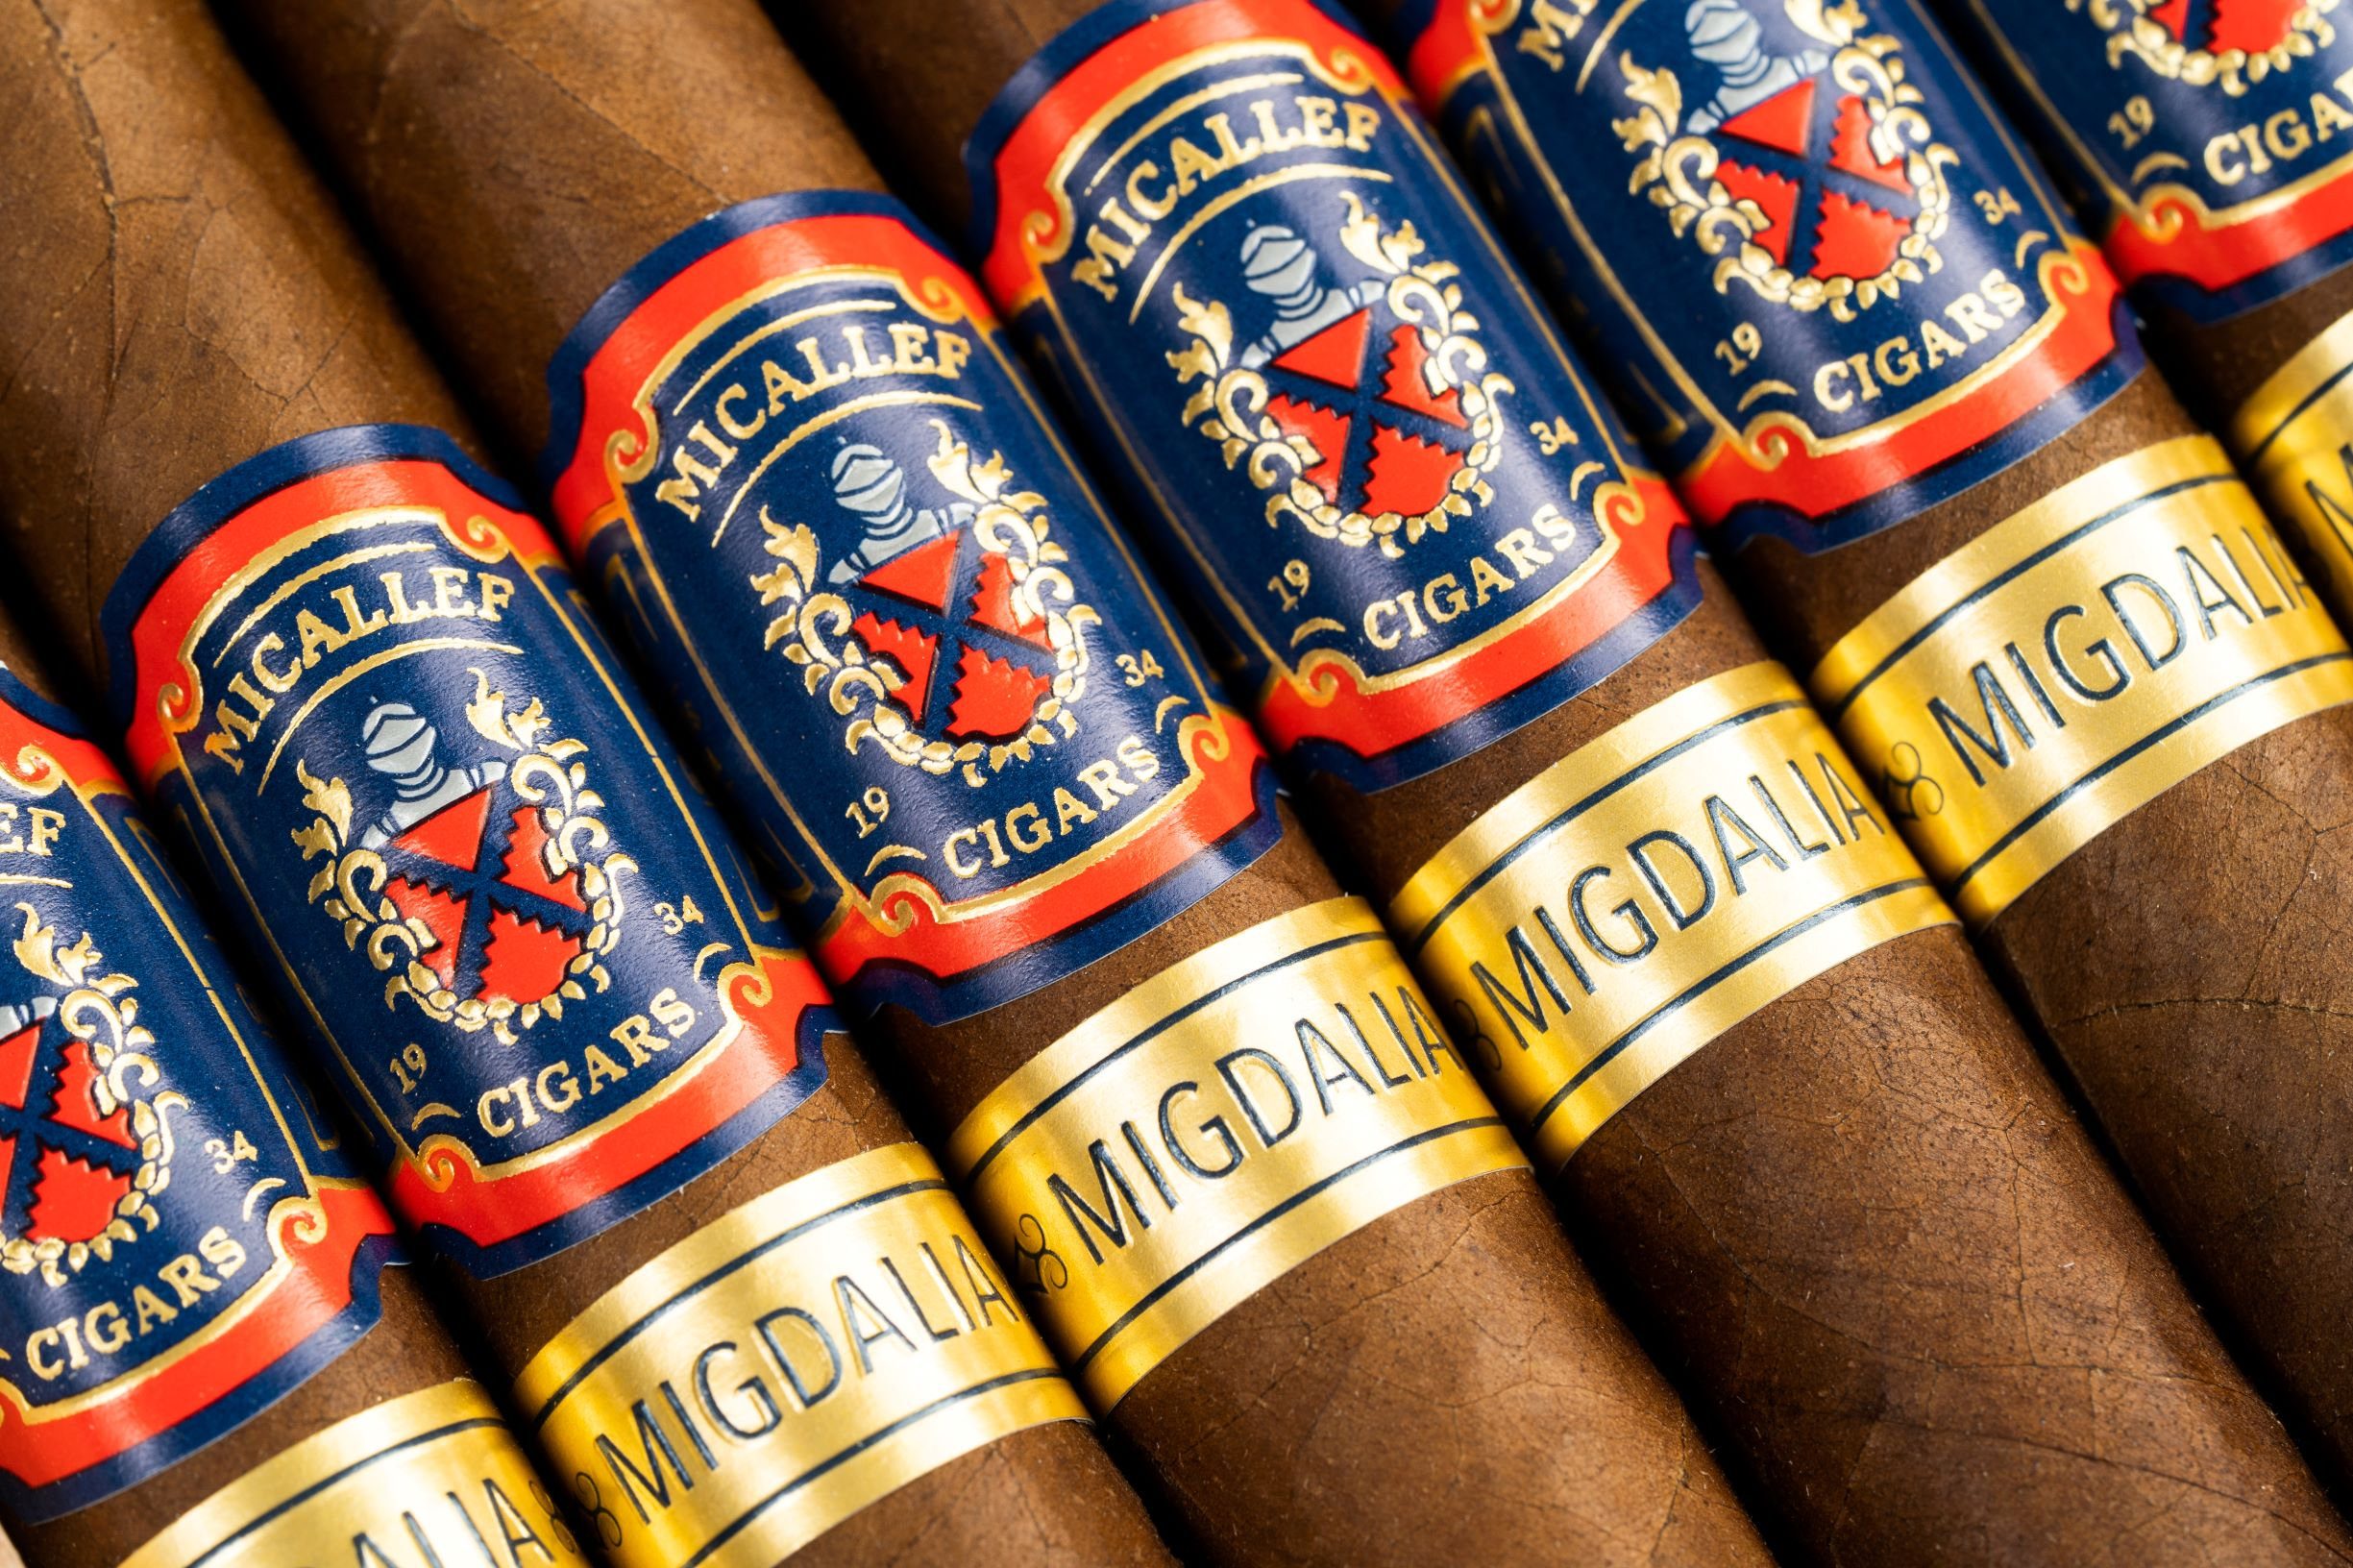 Cigar News: Micallef Cigars Honors Strong Women on International Women's Day with Migdalia Special Edition Release